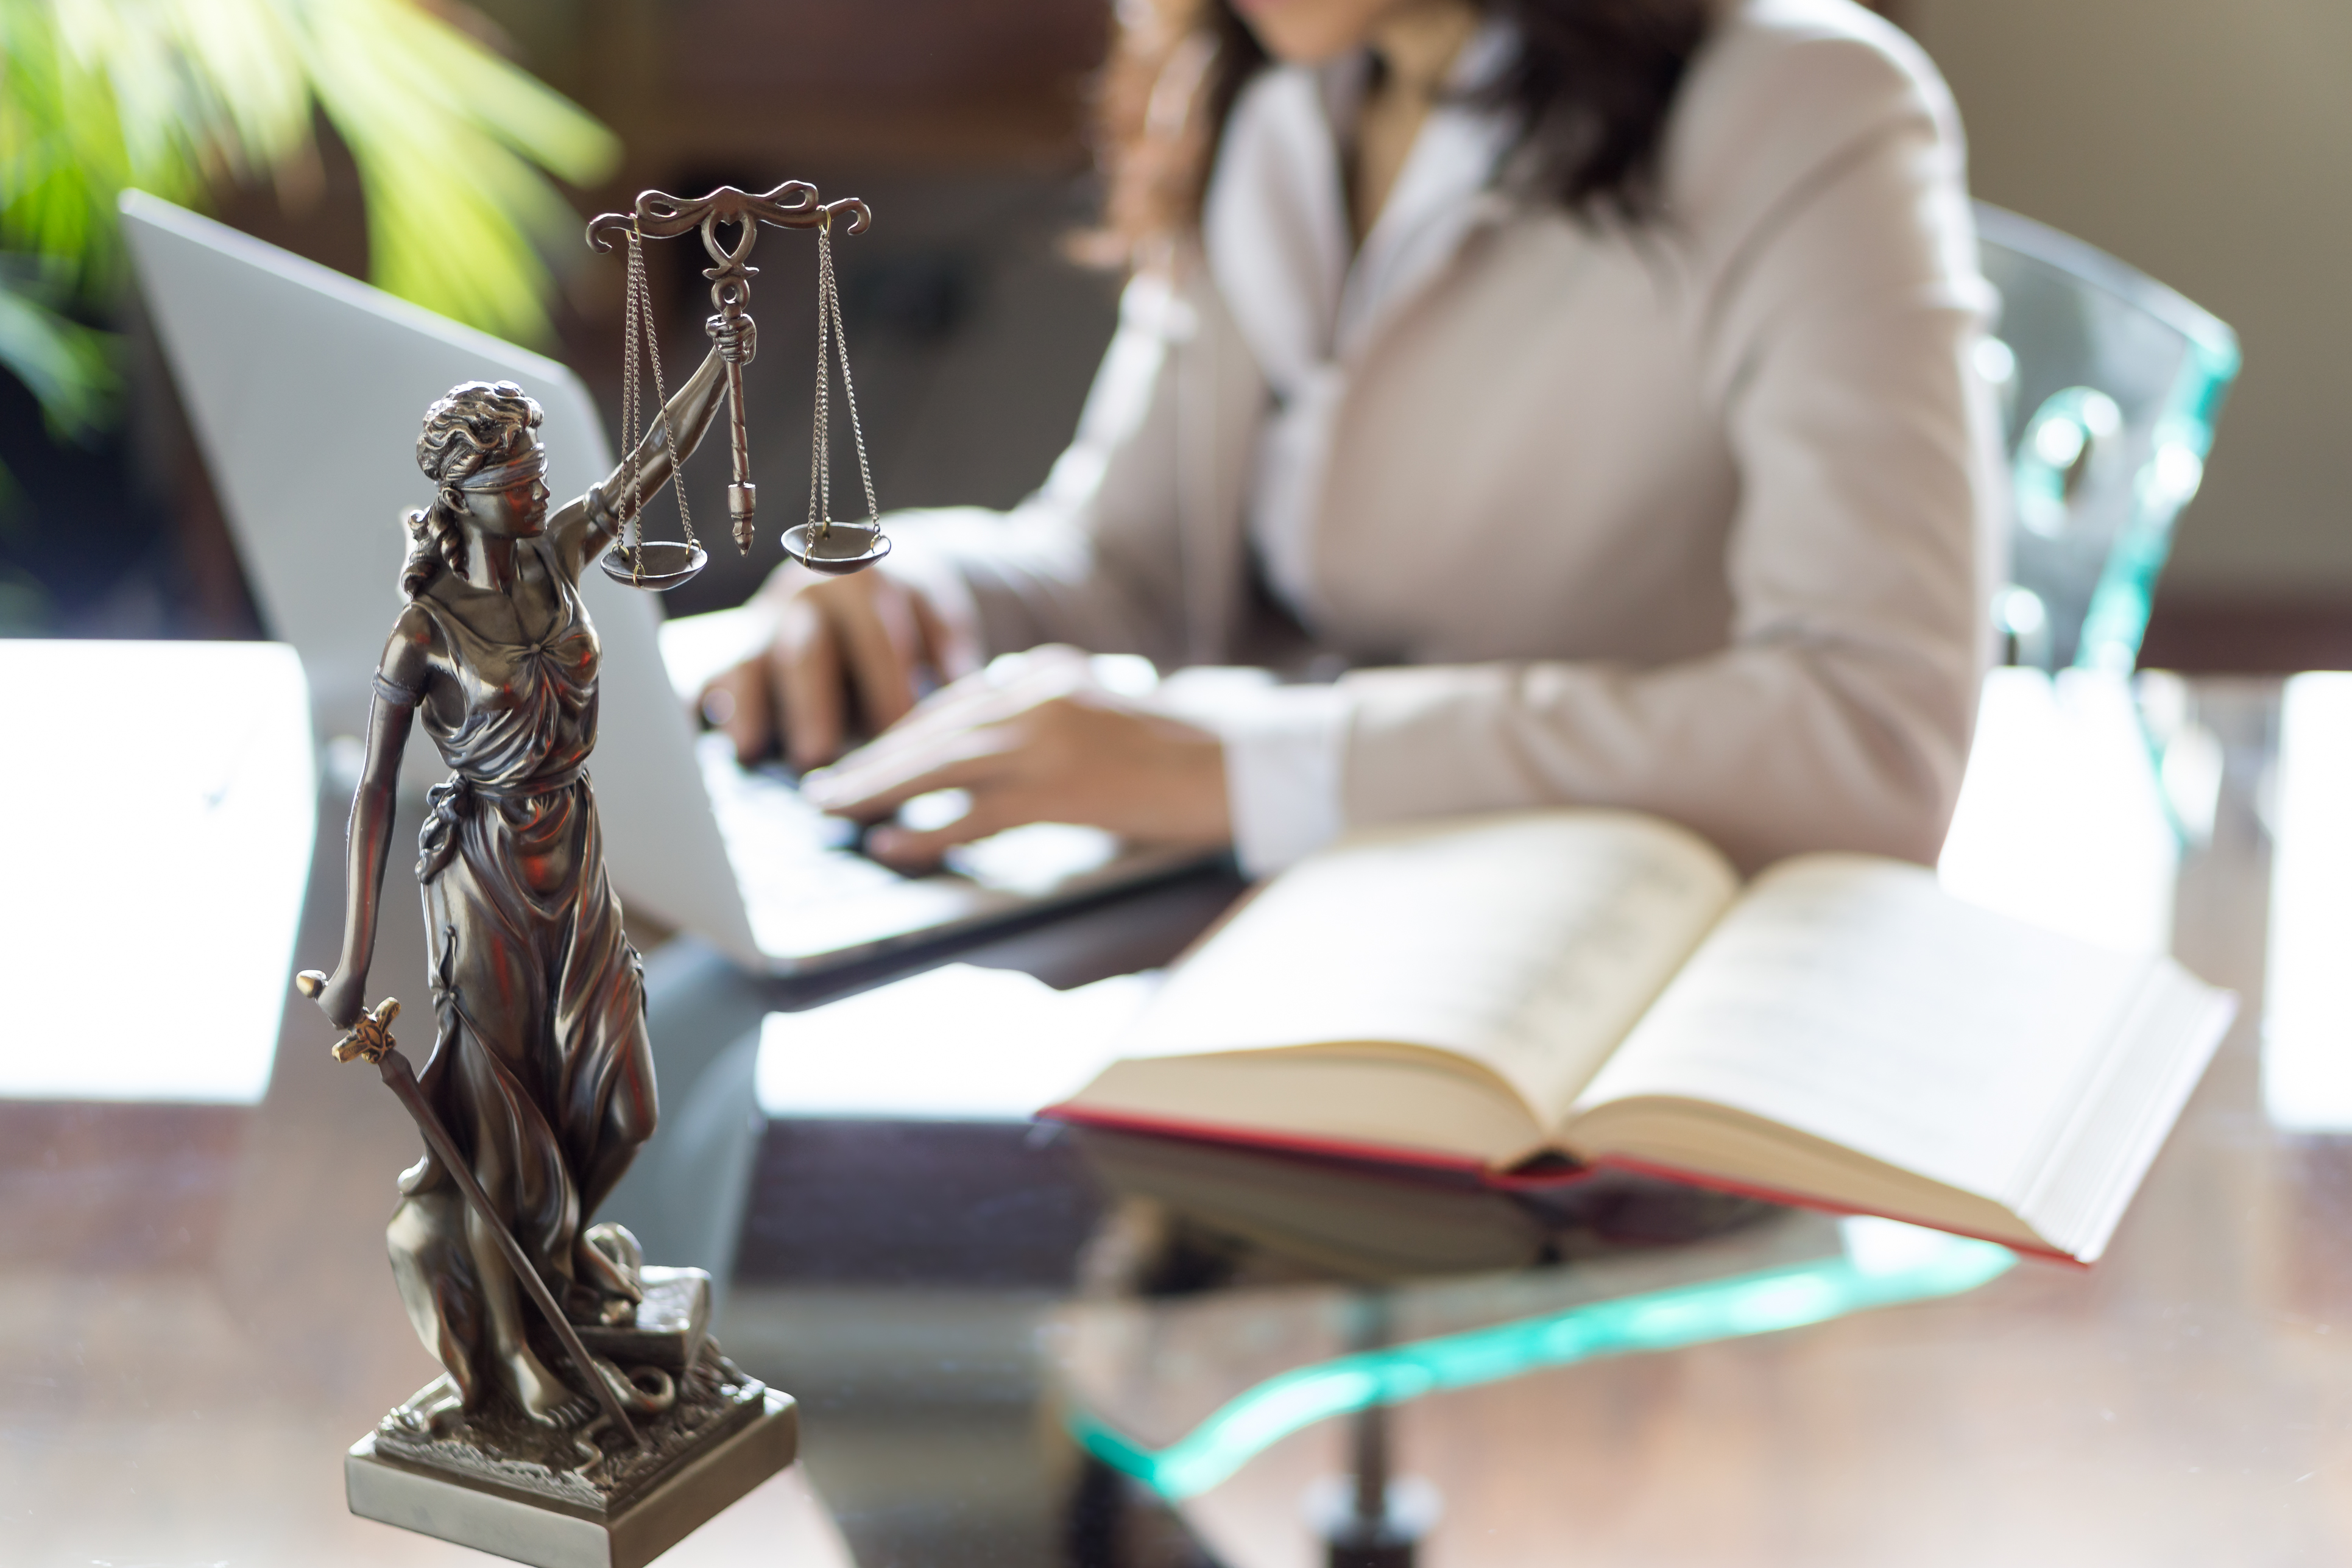 GettyImages 896359692 Workplace Accidents Attorney in Albuquerque, New Mexico